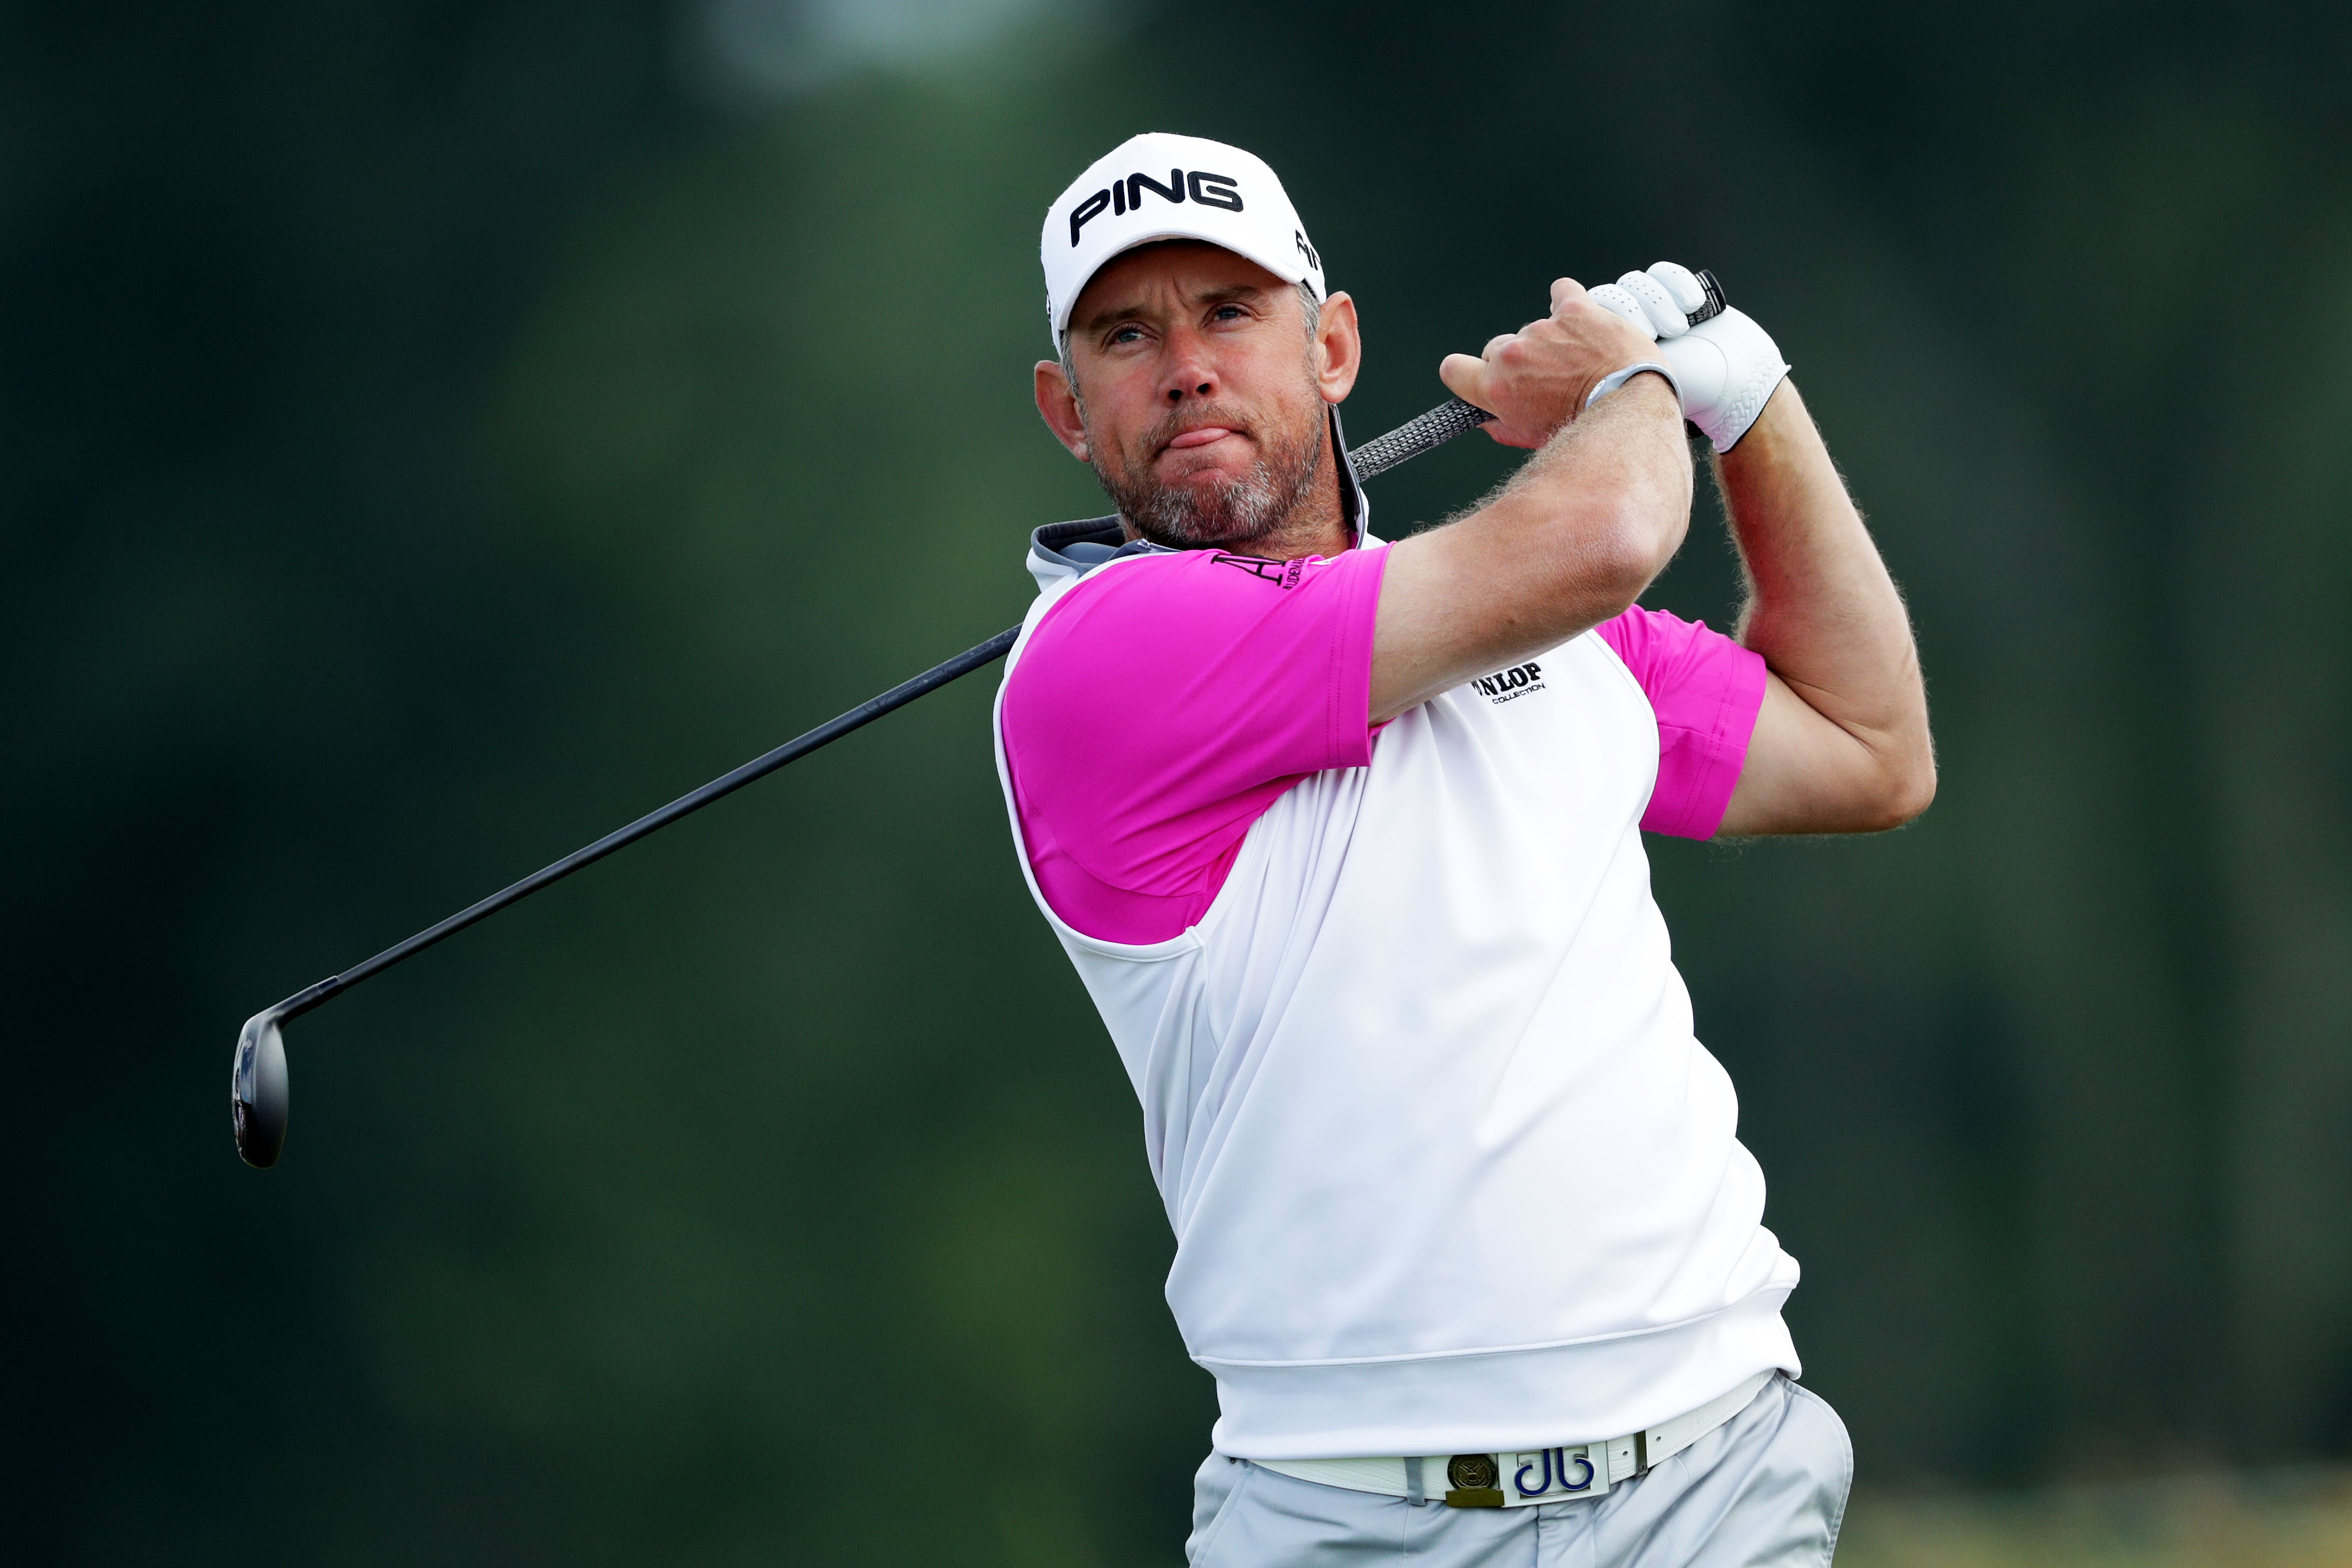 Lee Westwood finished off a round of 3-under 67 Friday, leaving him one shot off the lead. (Getty Images)